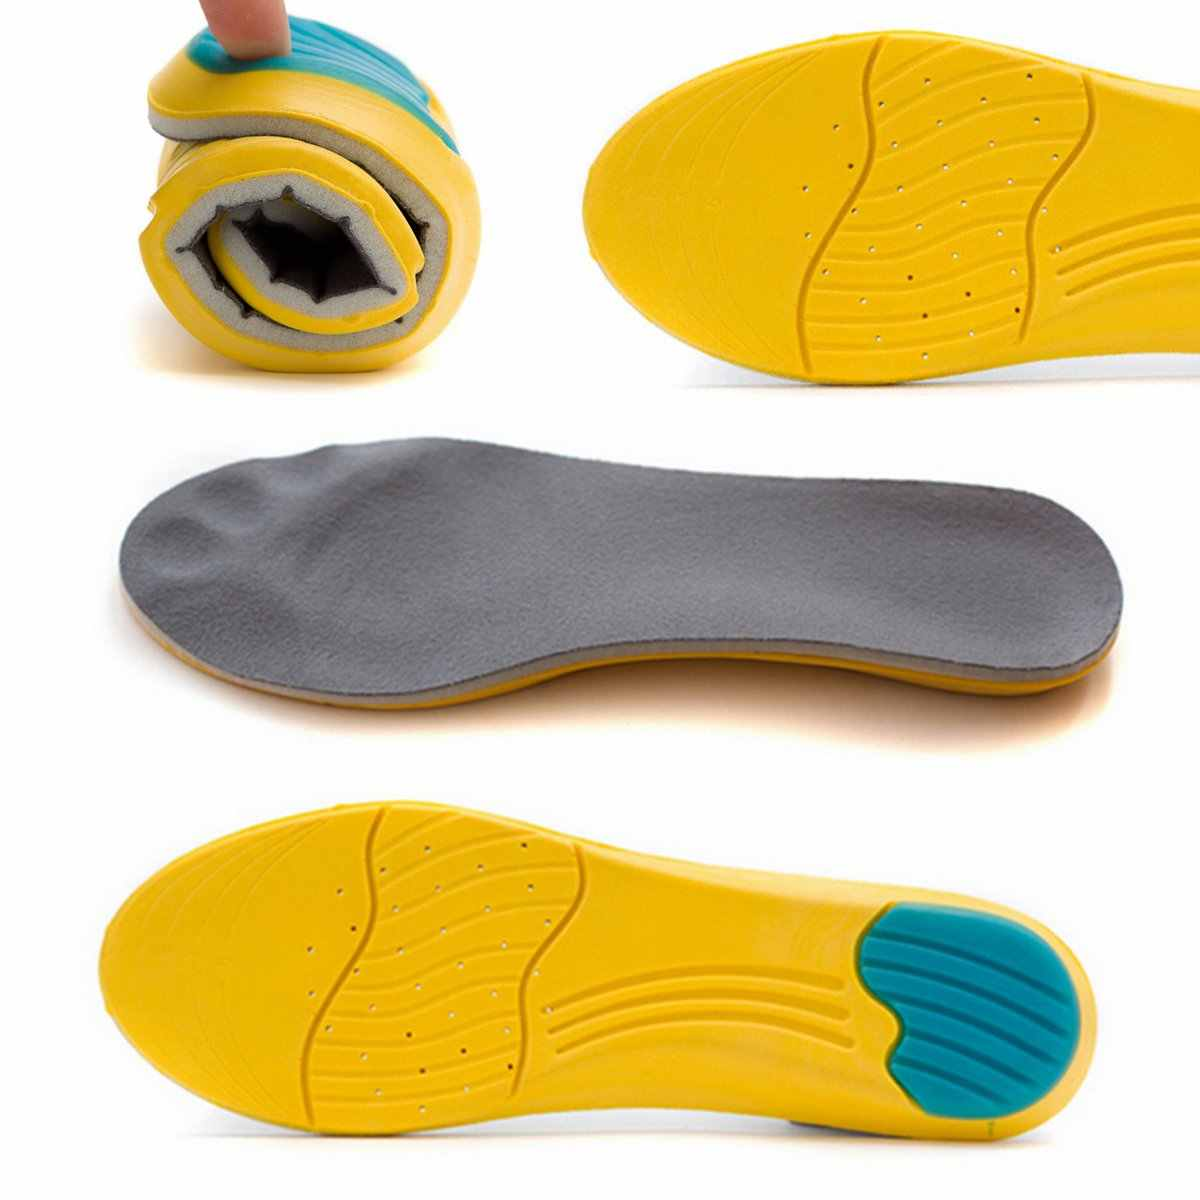 22a3ce68905 Detail Feedback Questions about 1Pair Memory Foam Insoles ...